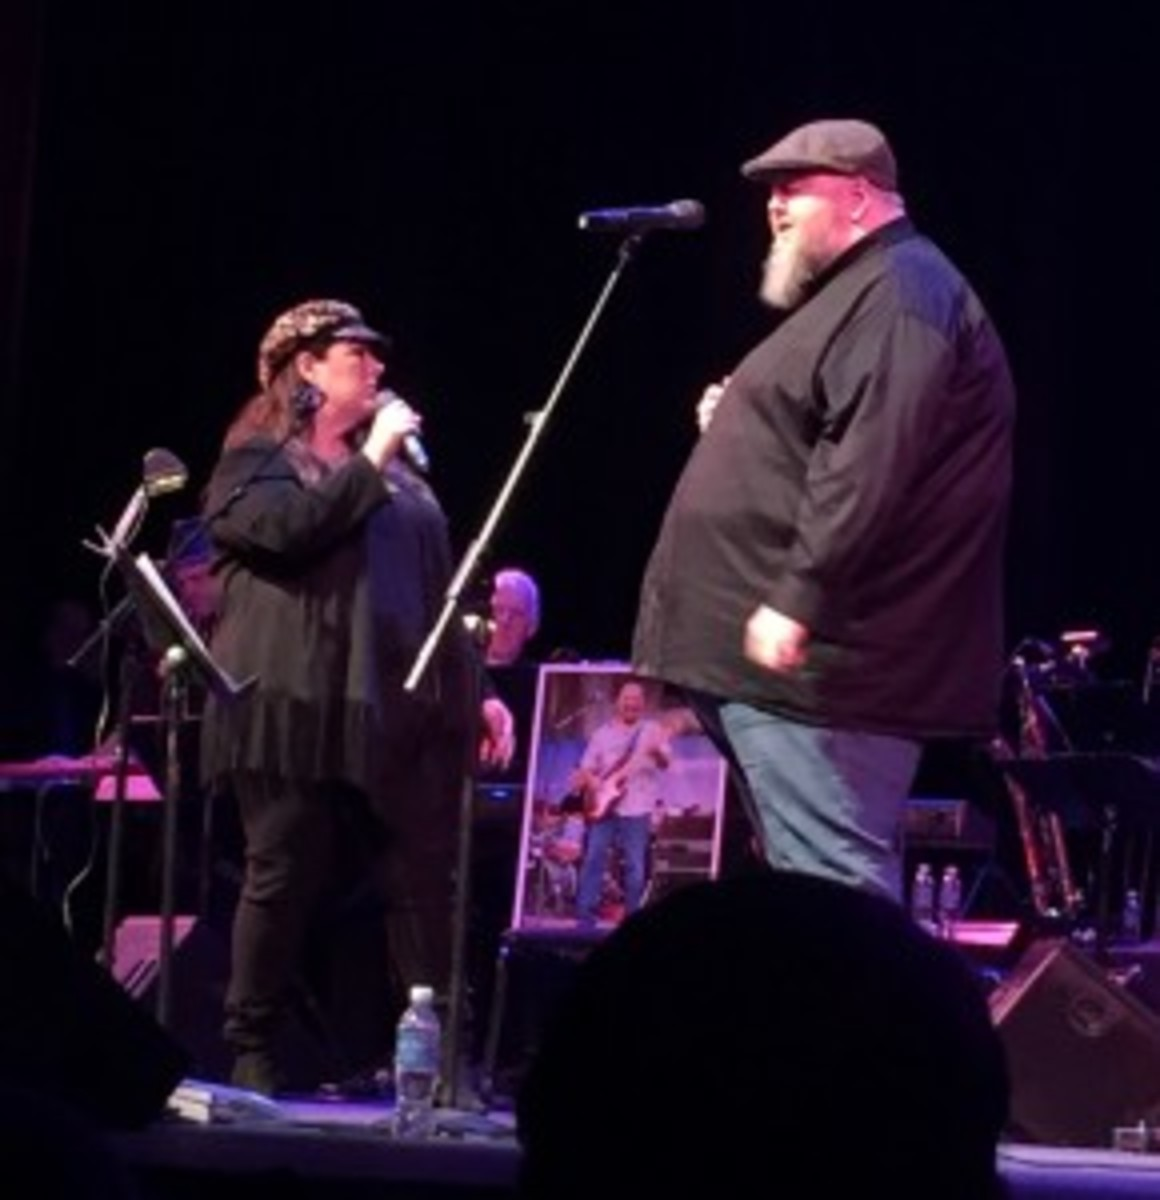 Carnie Wilson and Thomas Walsh of Pugwash